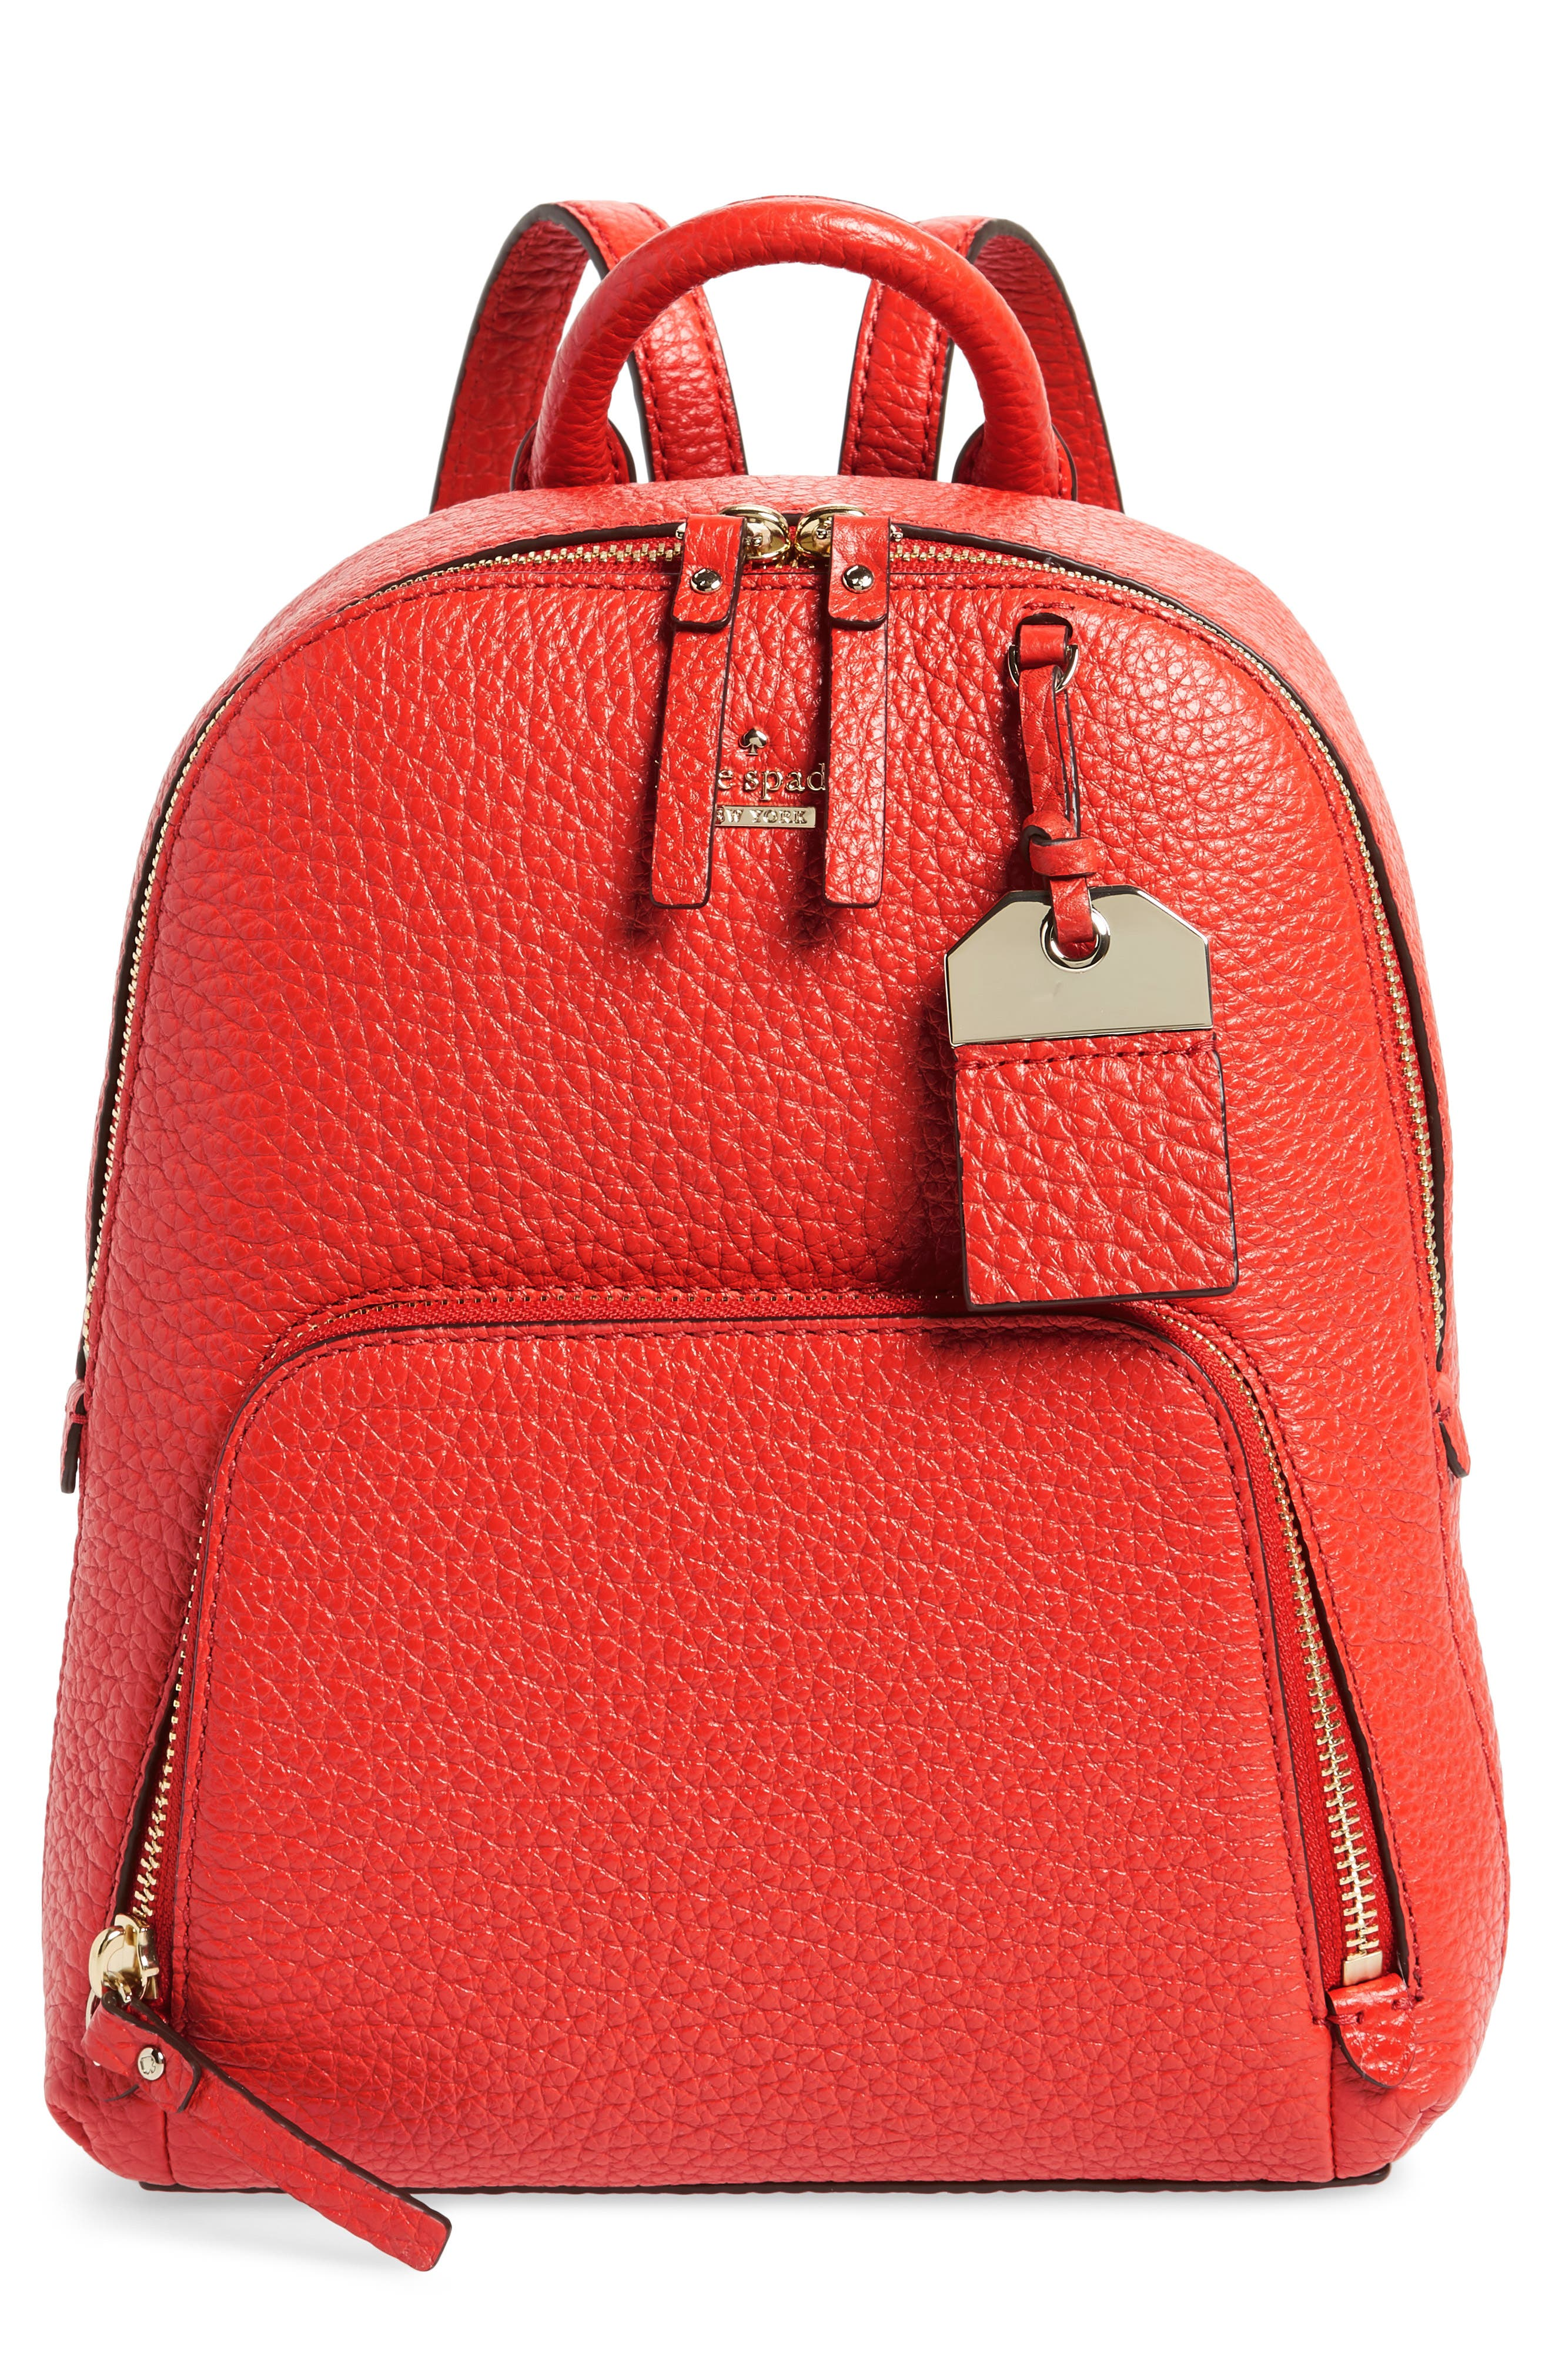 Main Image - kate spade new york carter street - caden leather backpack